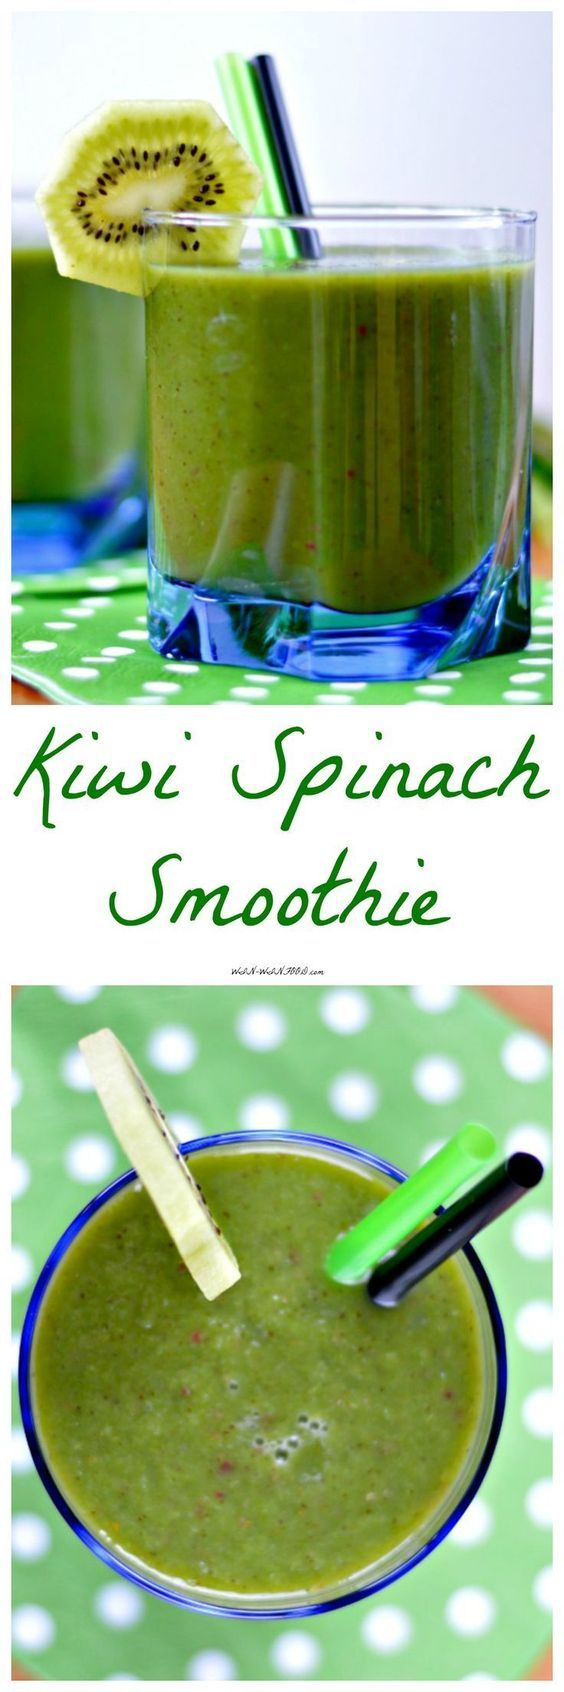 Kiwi Spinach Smoothie | WIN-WINFOOD.com The most refreshing breakfast ever!